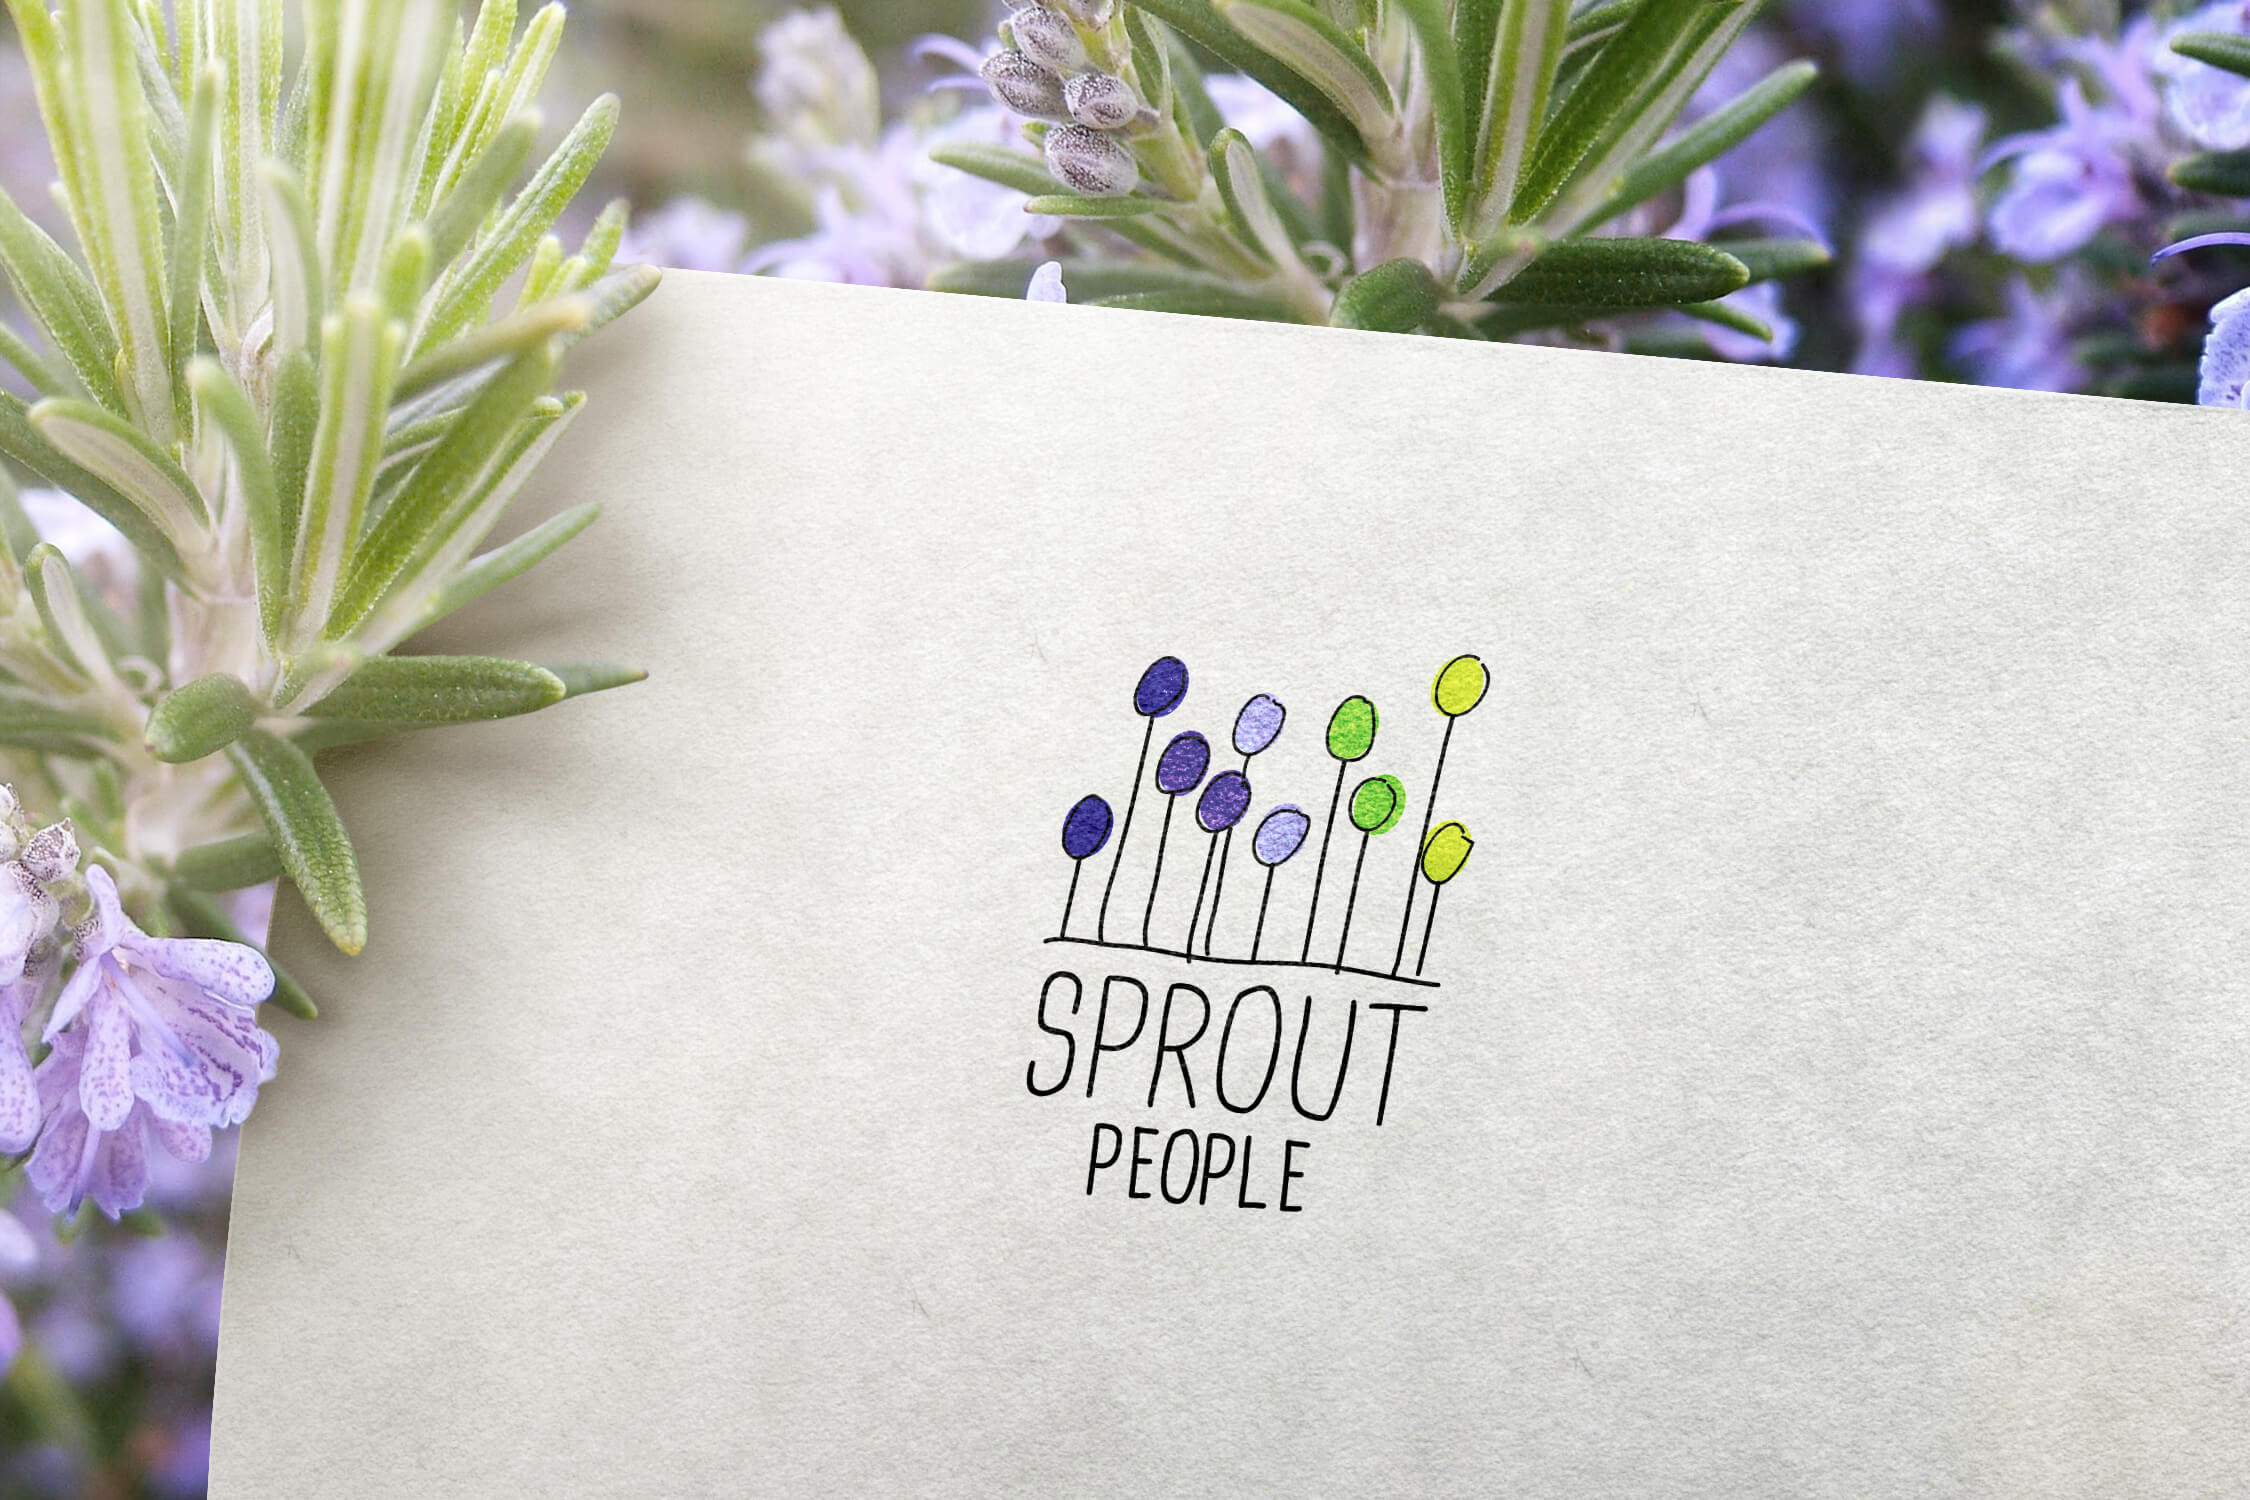 Close up of the Sprout People logo design on paper